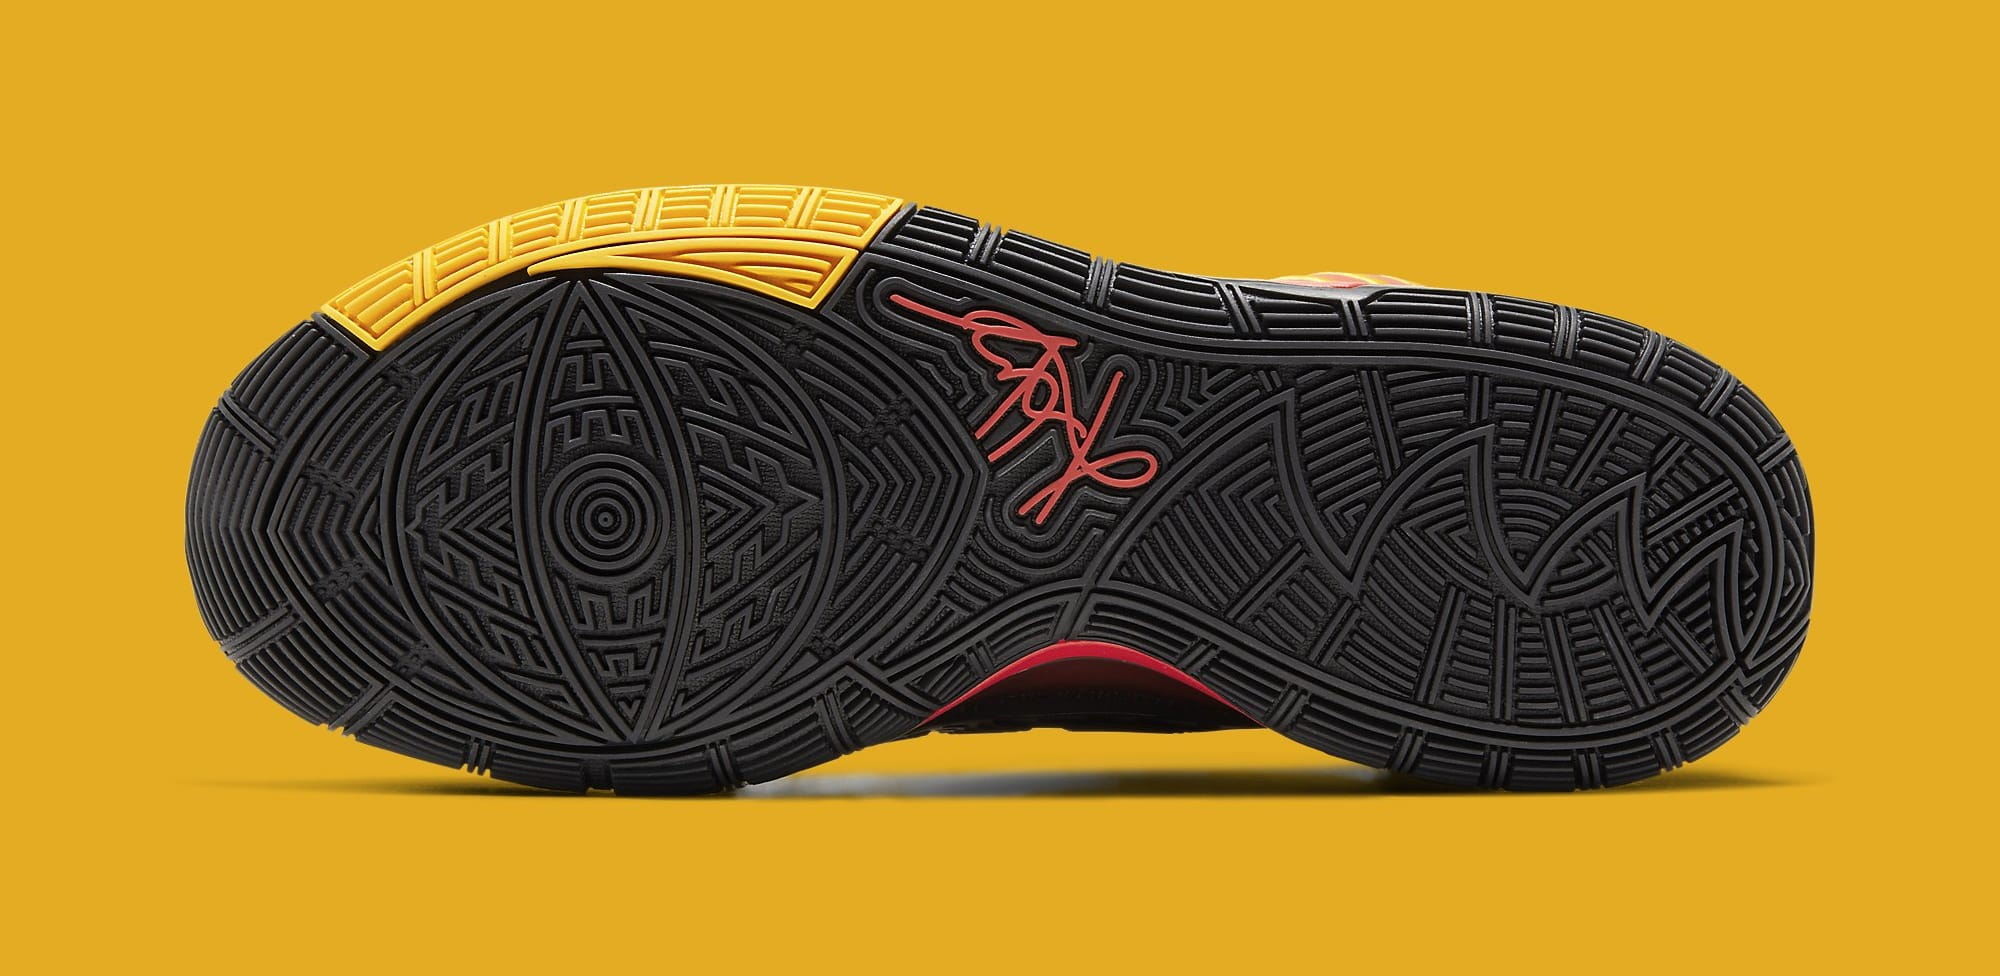 Nike Kyrie 6 'Bruce Lee' CJ1290-600 Outsole